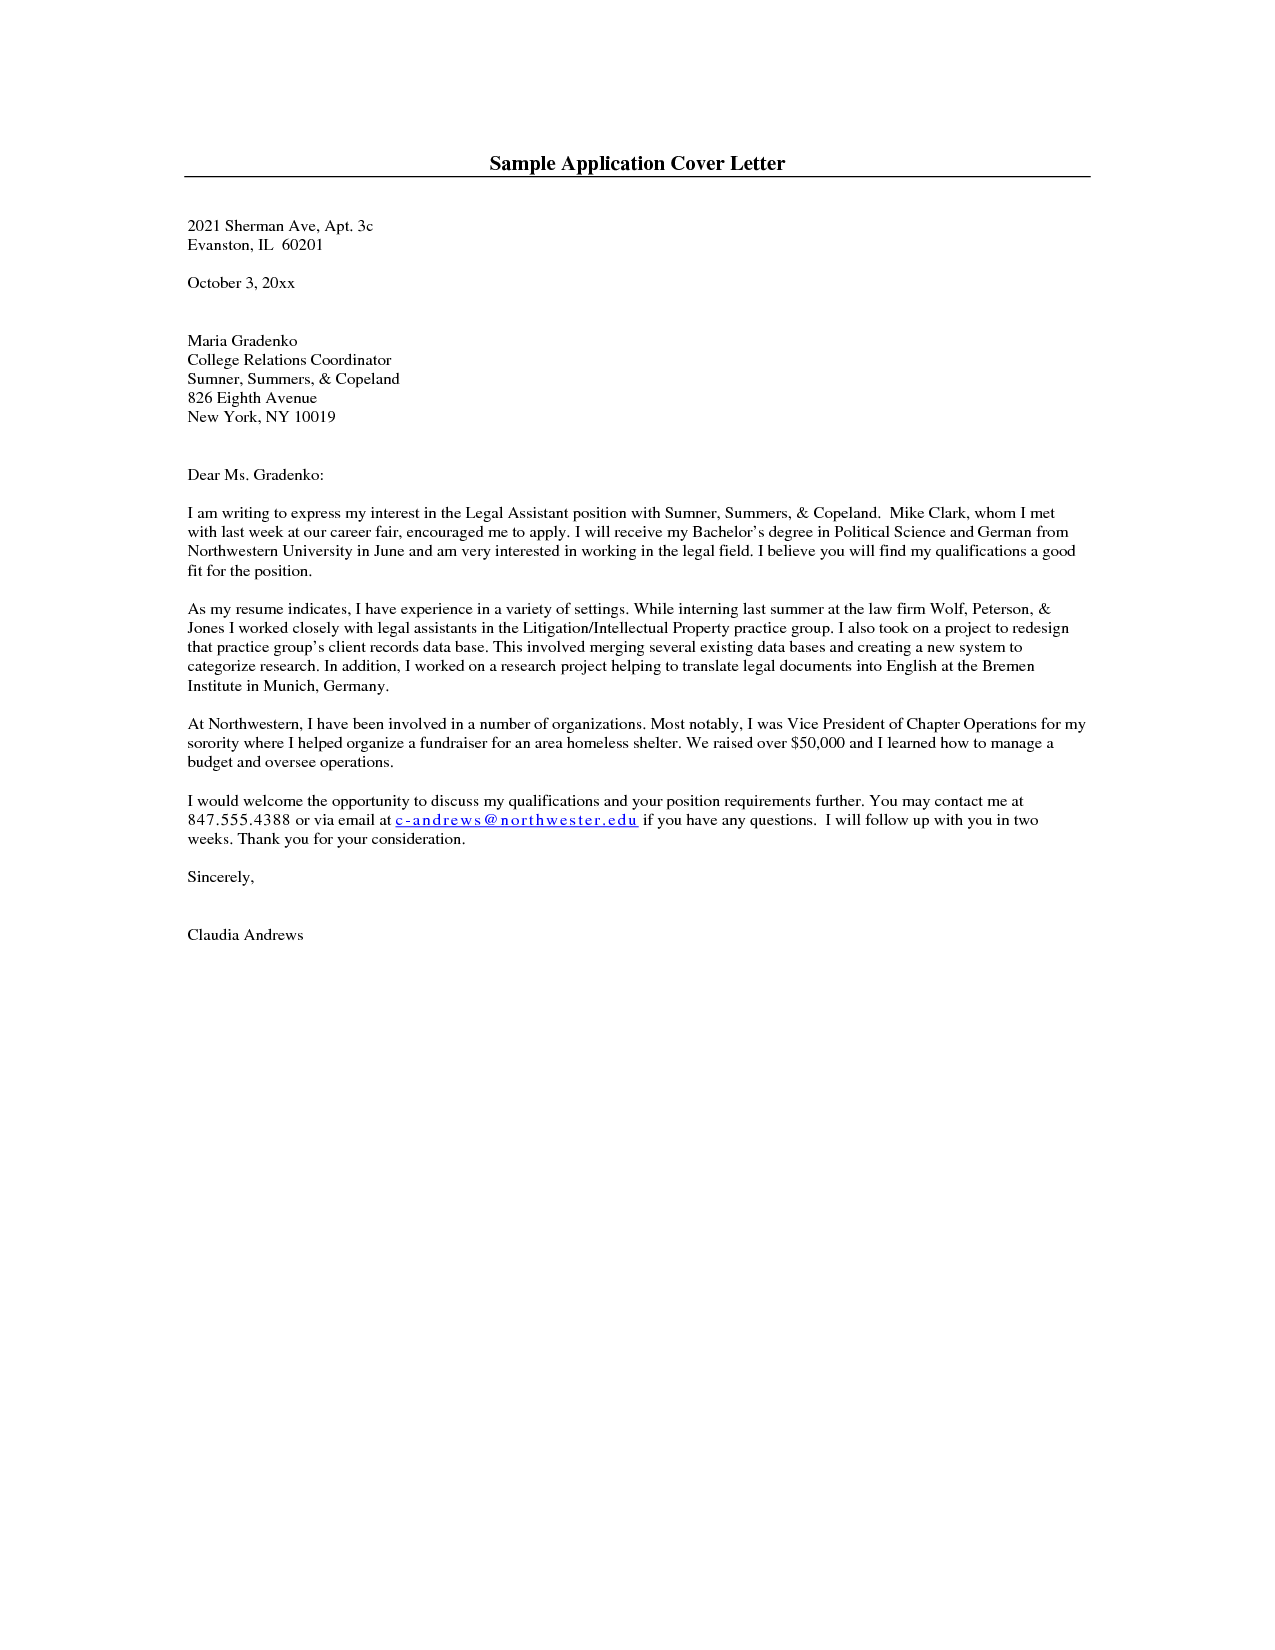 Letter Free Cover Sample Letters Application With Format  Simple Cover Letter Template